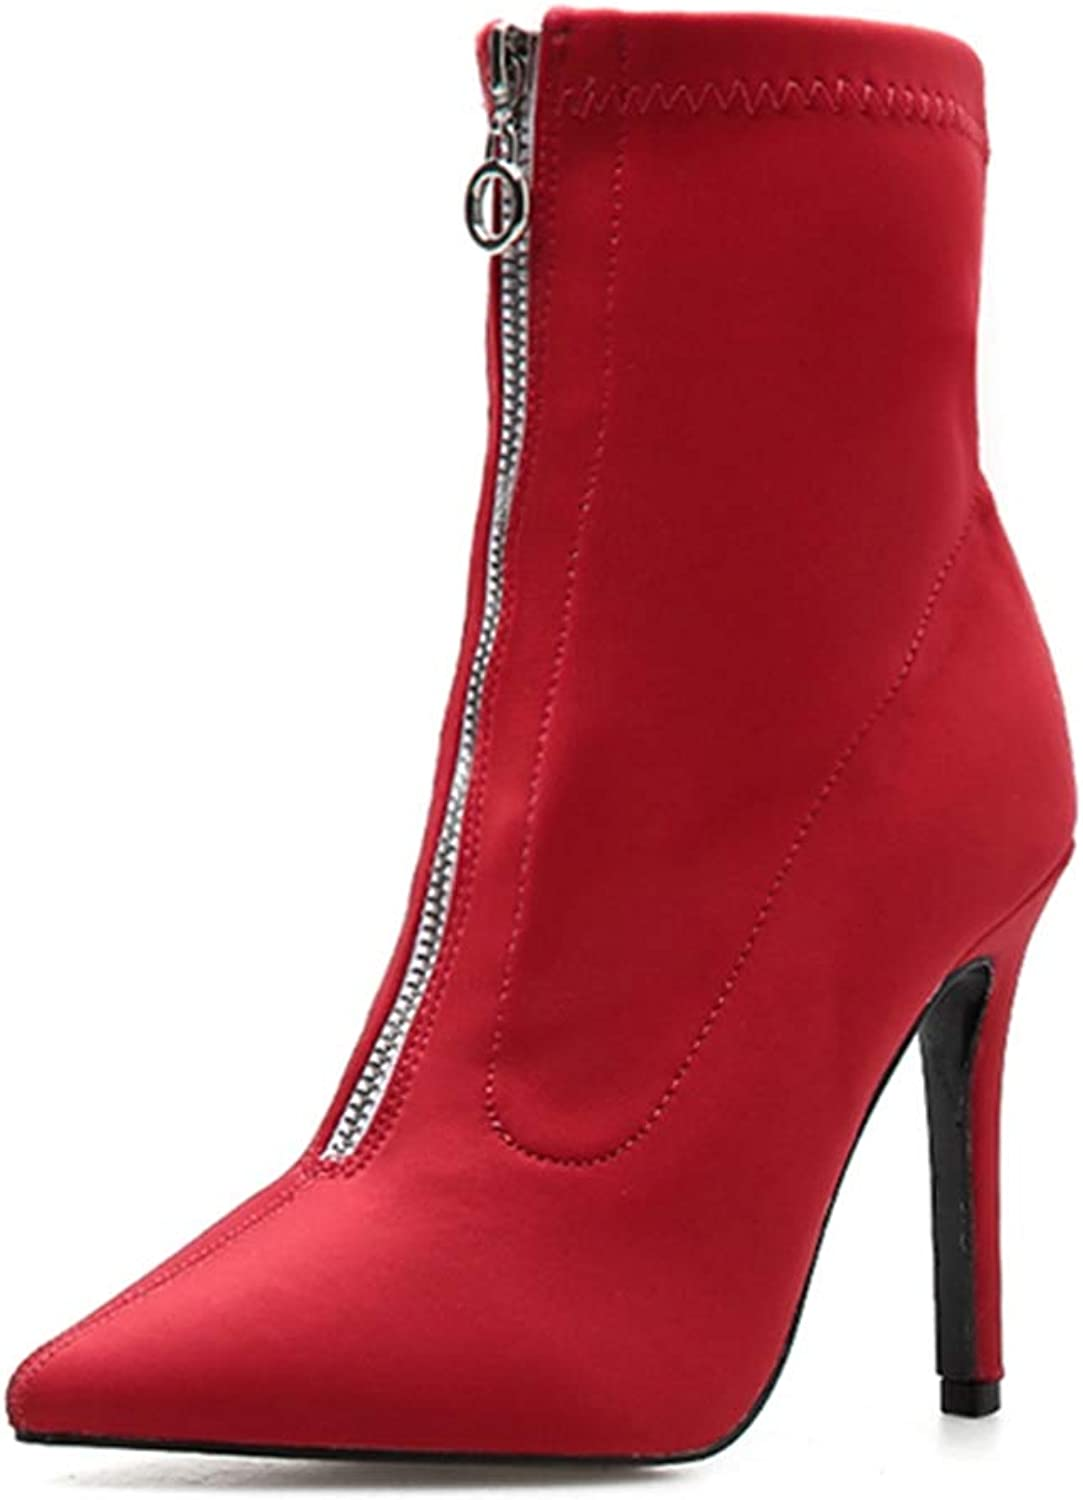 GIY Women Thin High Heels Ankle Boots Pointed Toe Fashion Stiletto Zip Stretch Socks Party Pumps Boots